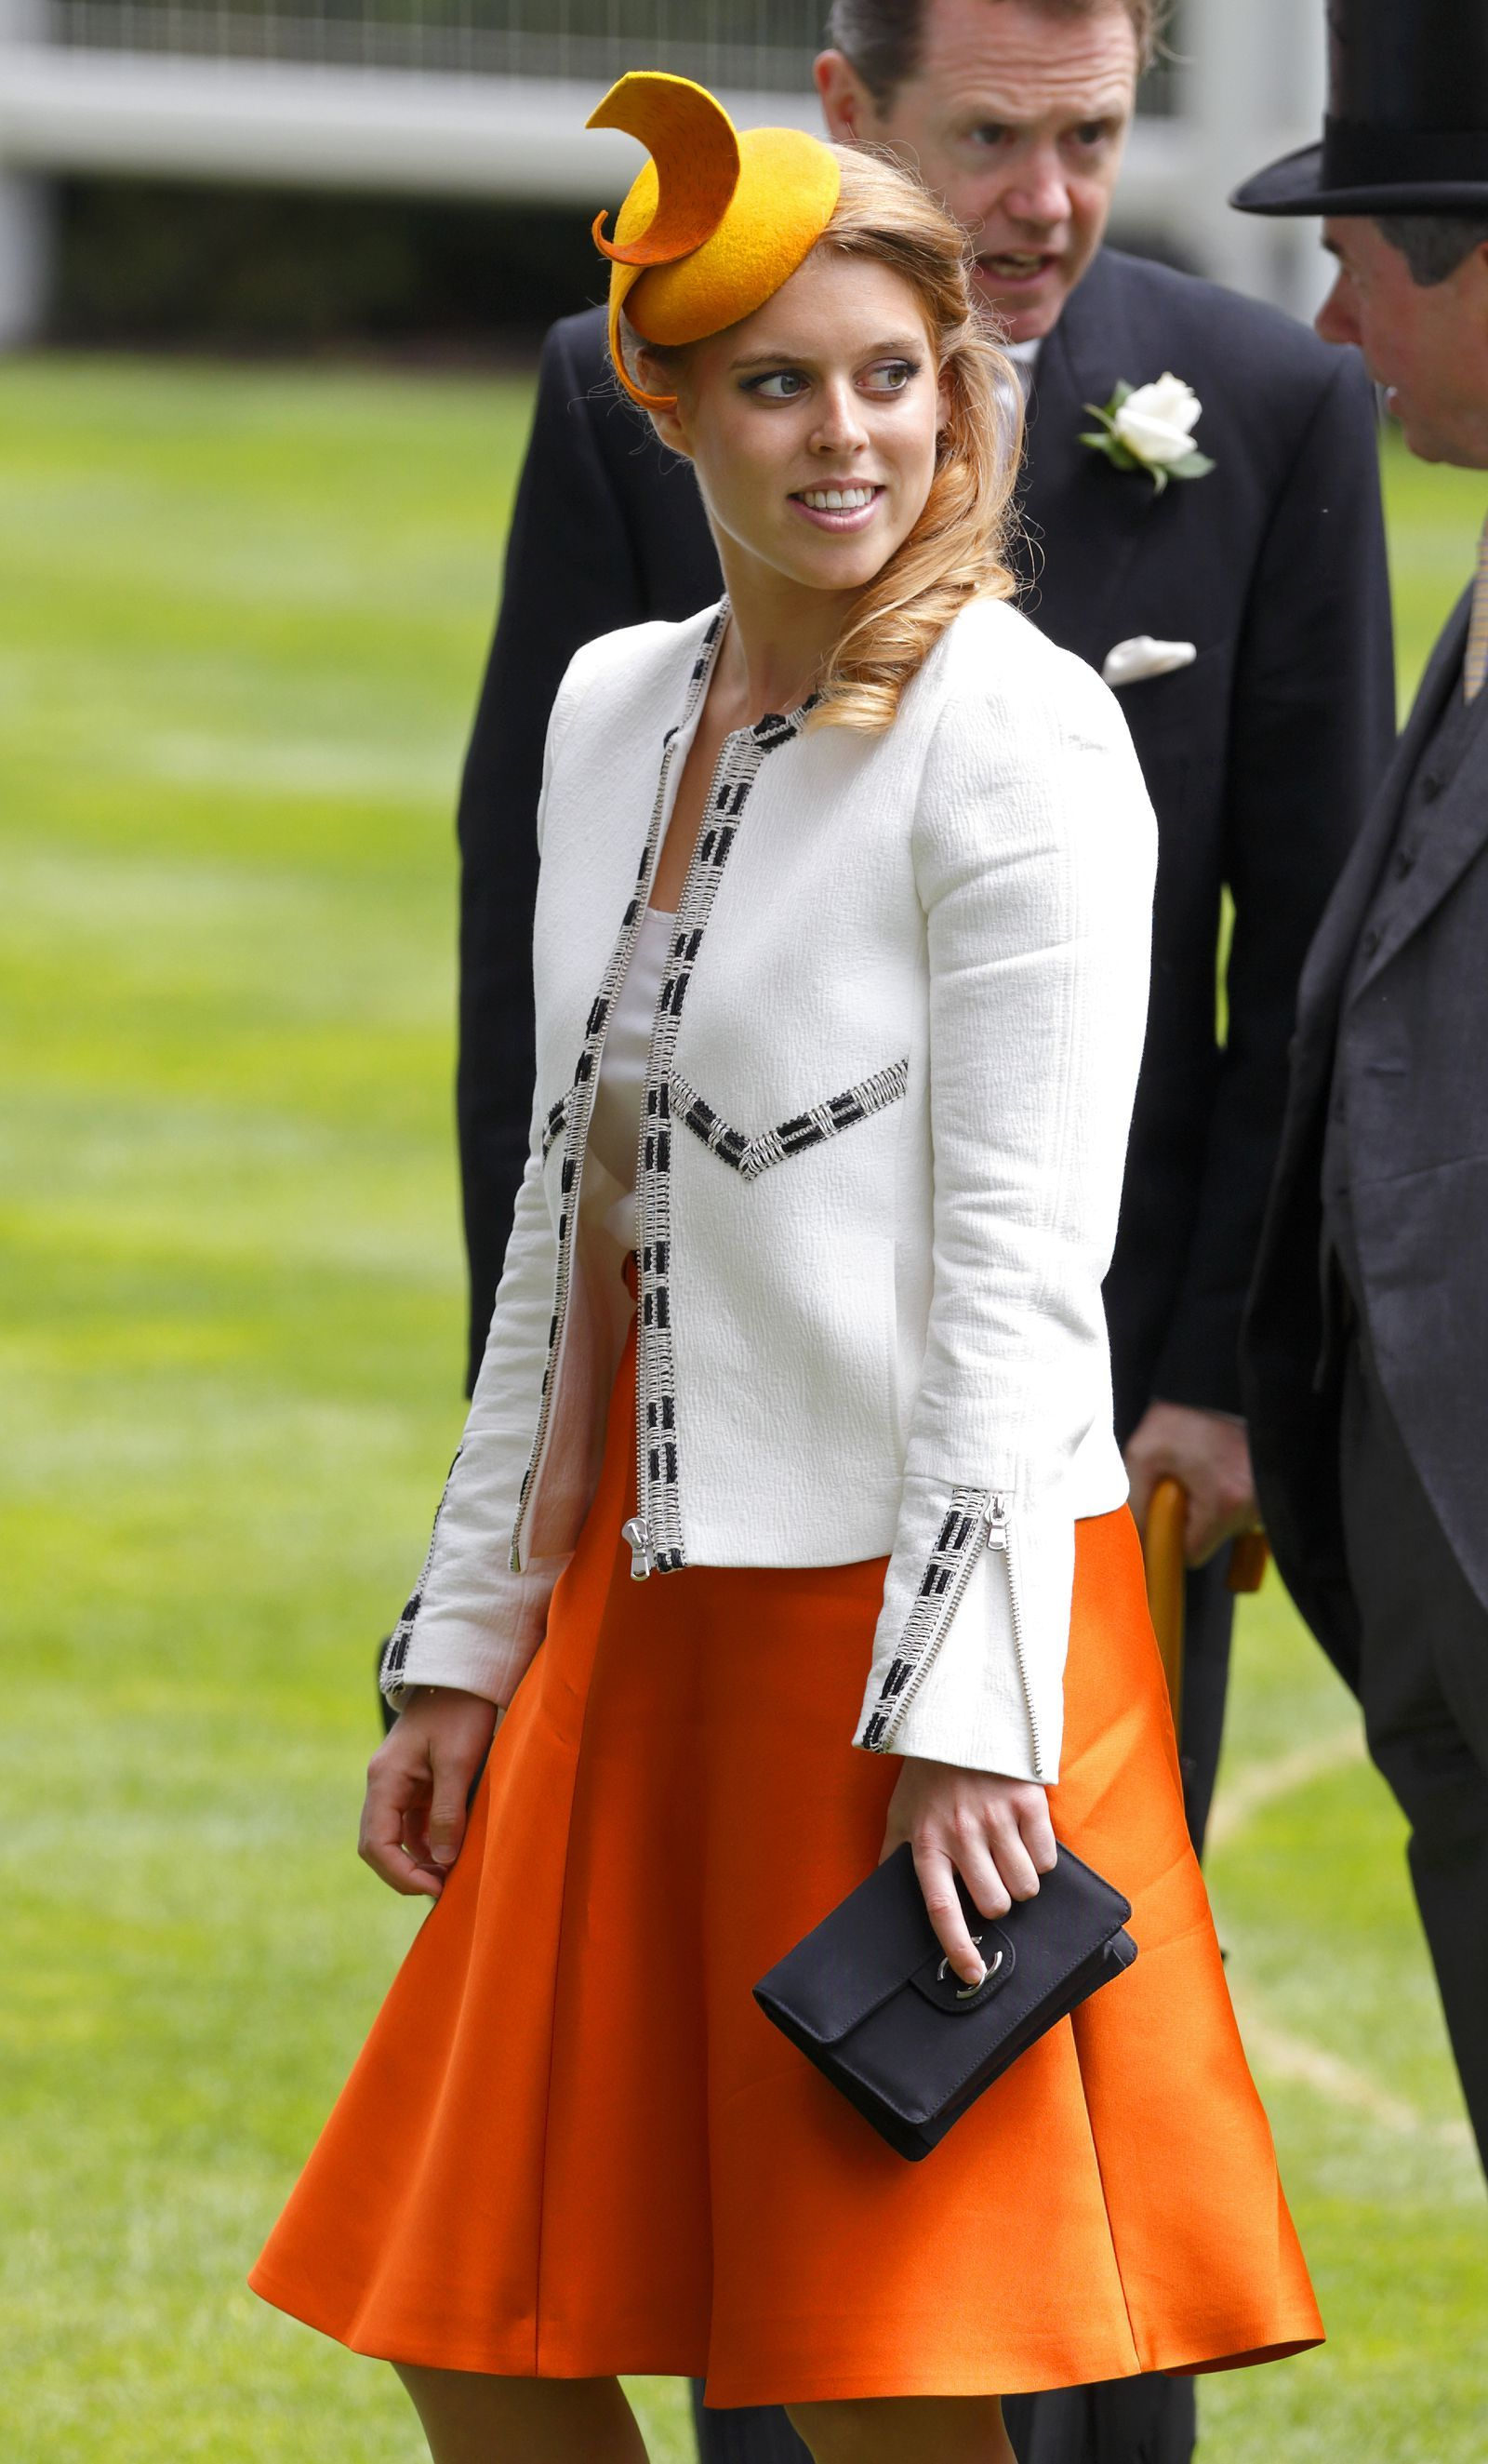 Twitter's Already Freaking Out Over Princess Beatrice's